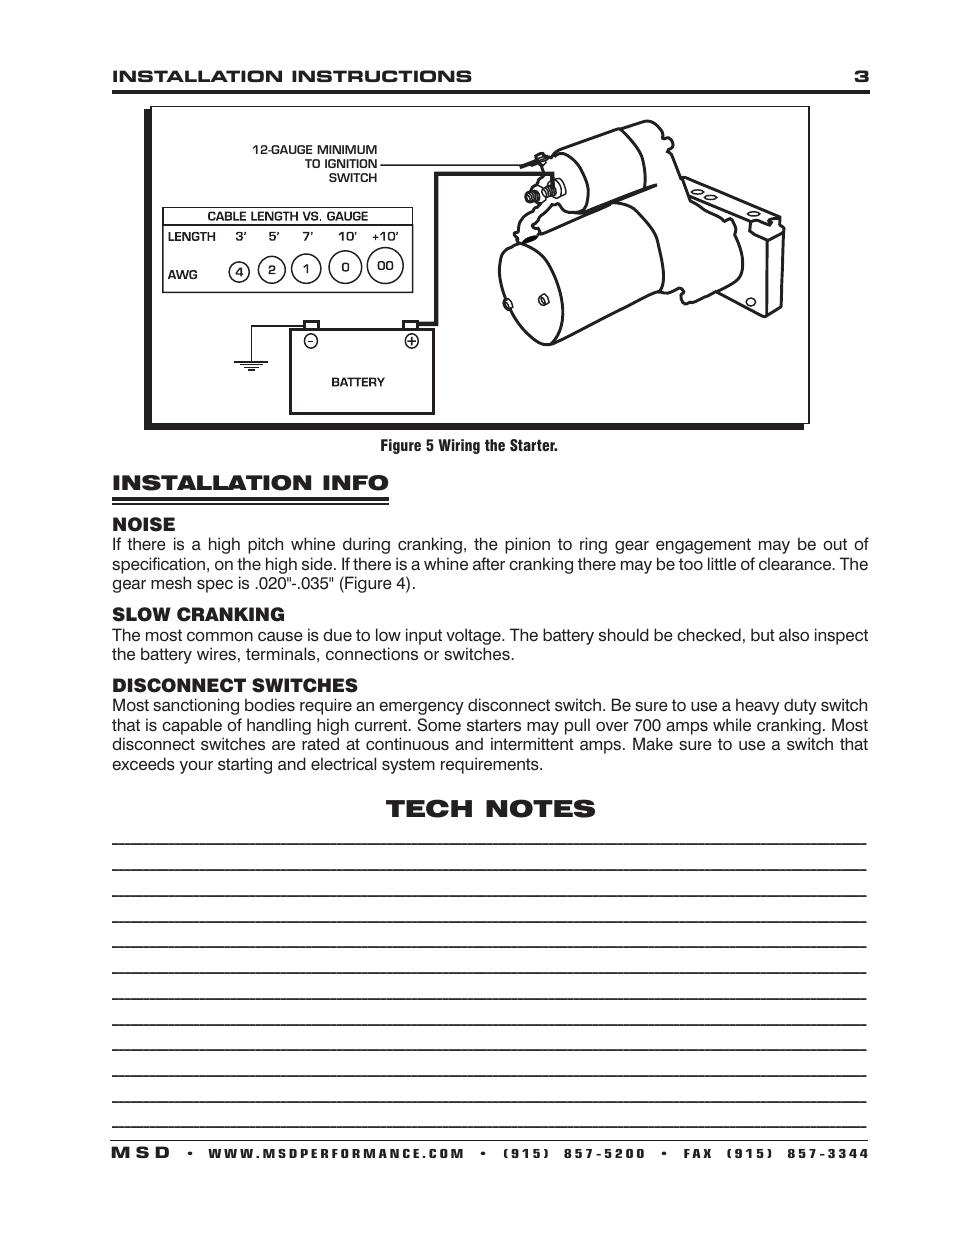 installation info | msd 5096 dynaforce starter, gm ls1-ls7 engines  installation user manual | page 3 / 4